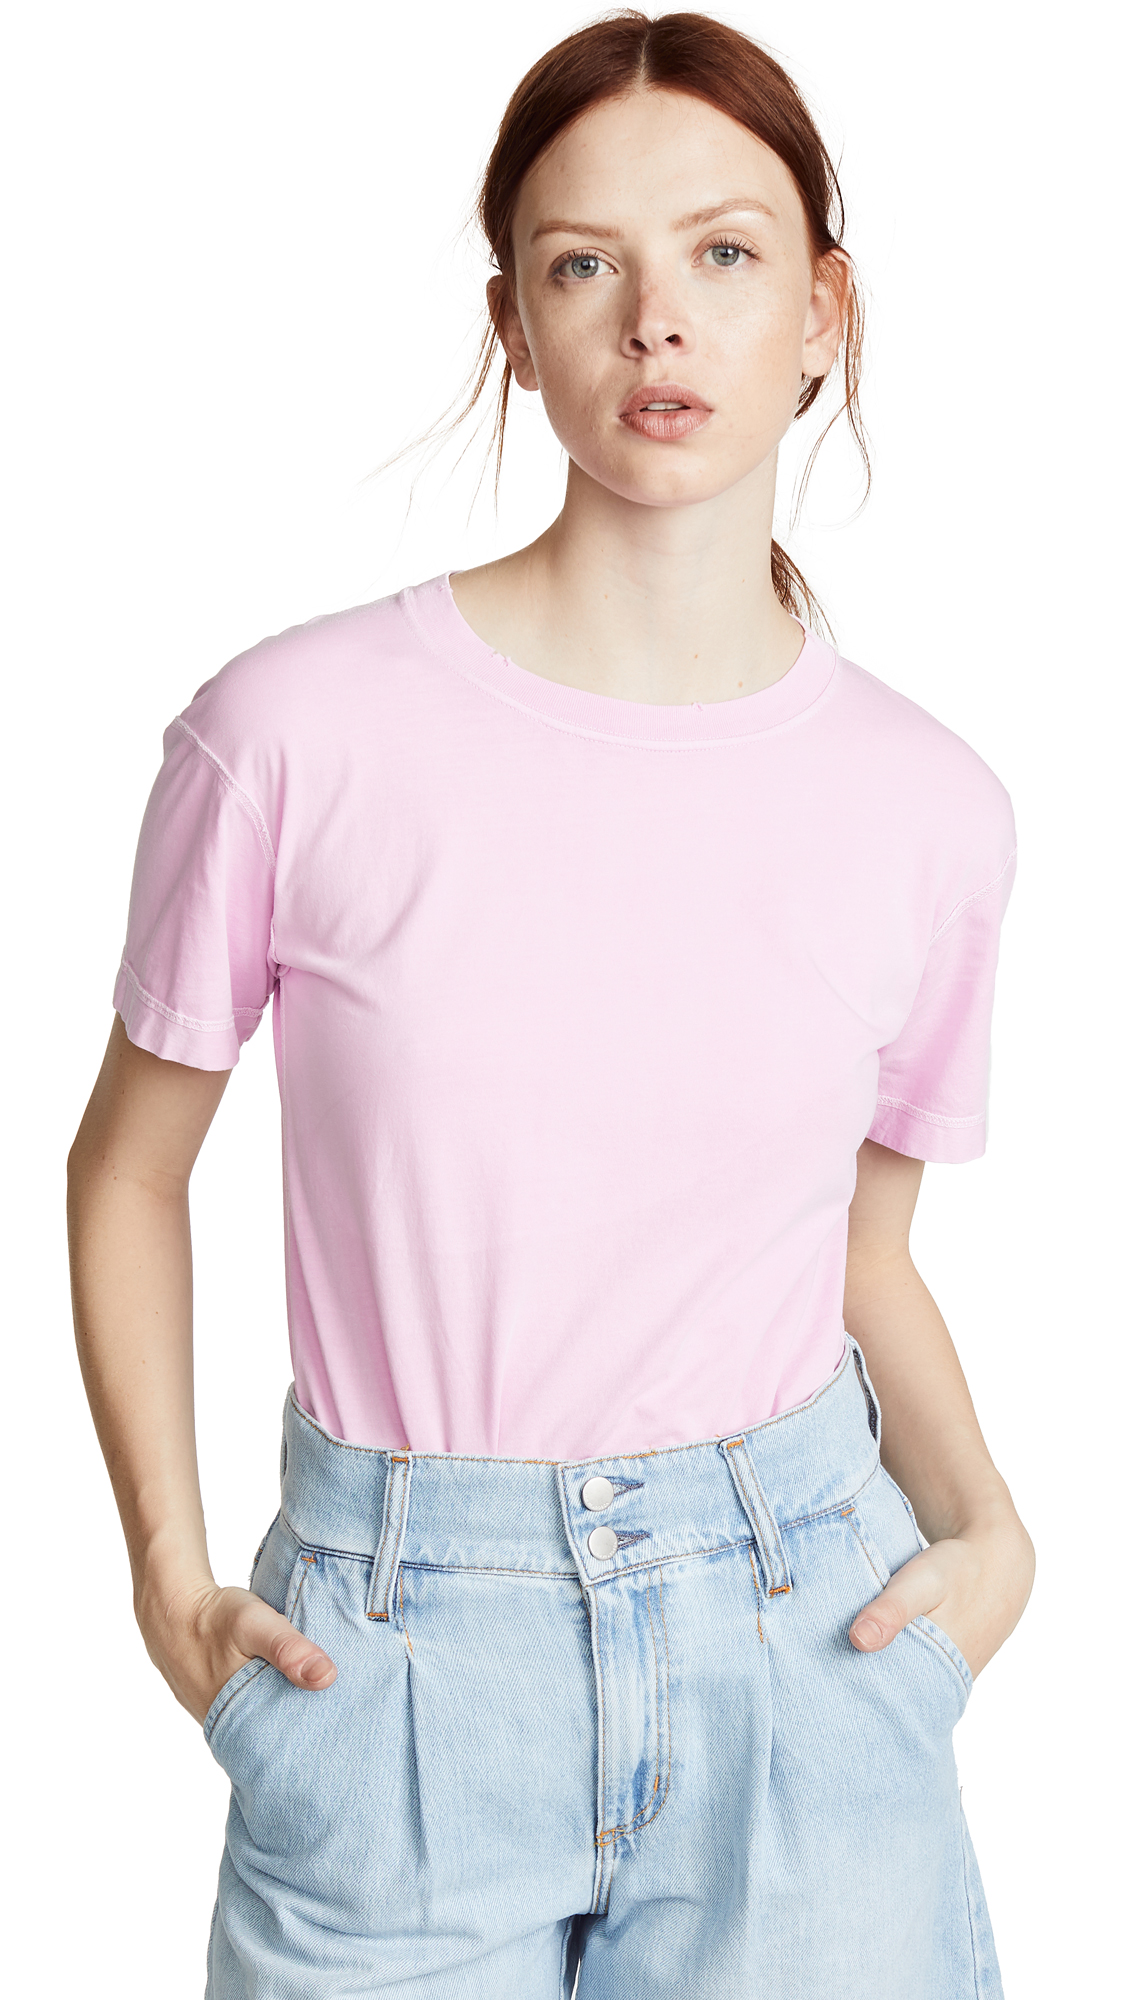 Helmut Lang Distressed T-Shirt - Disco Pink